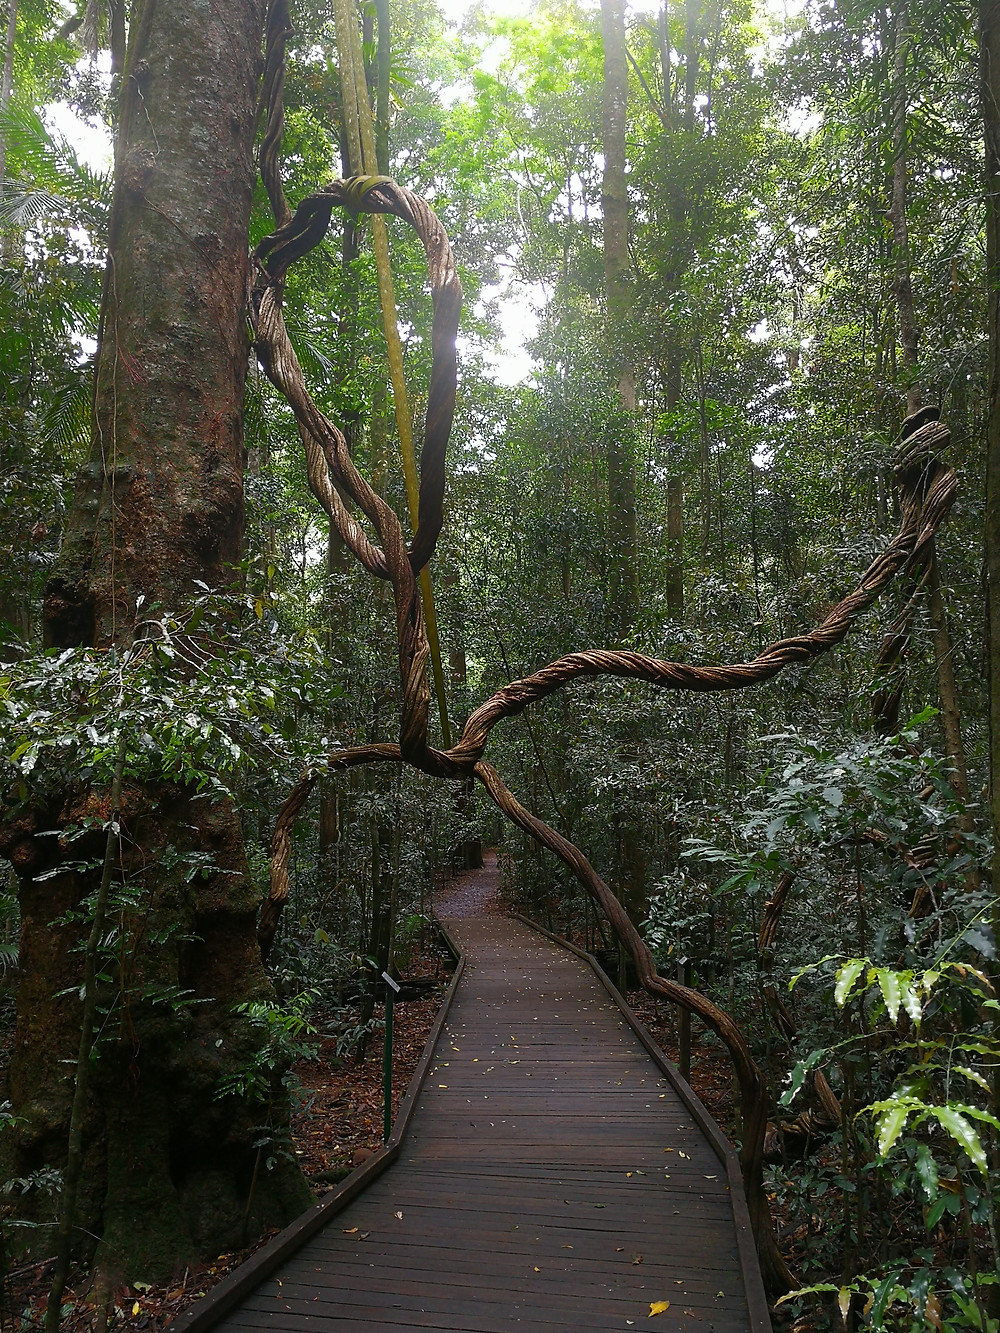 Twisted vines in the rainforest